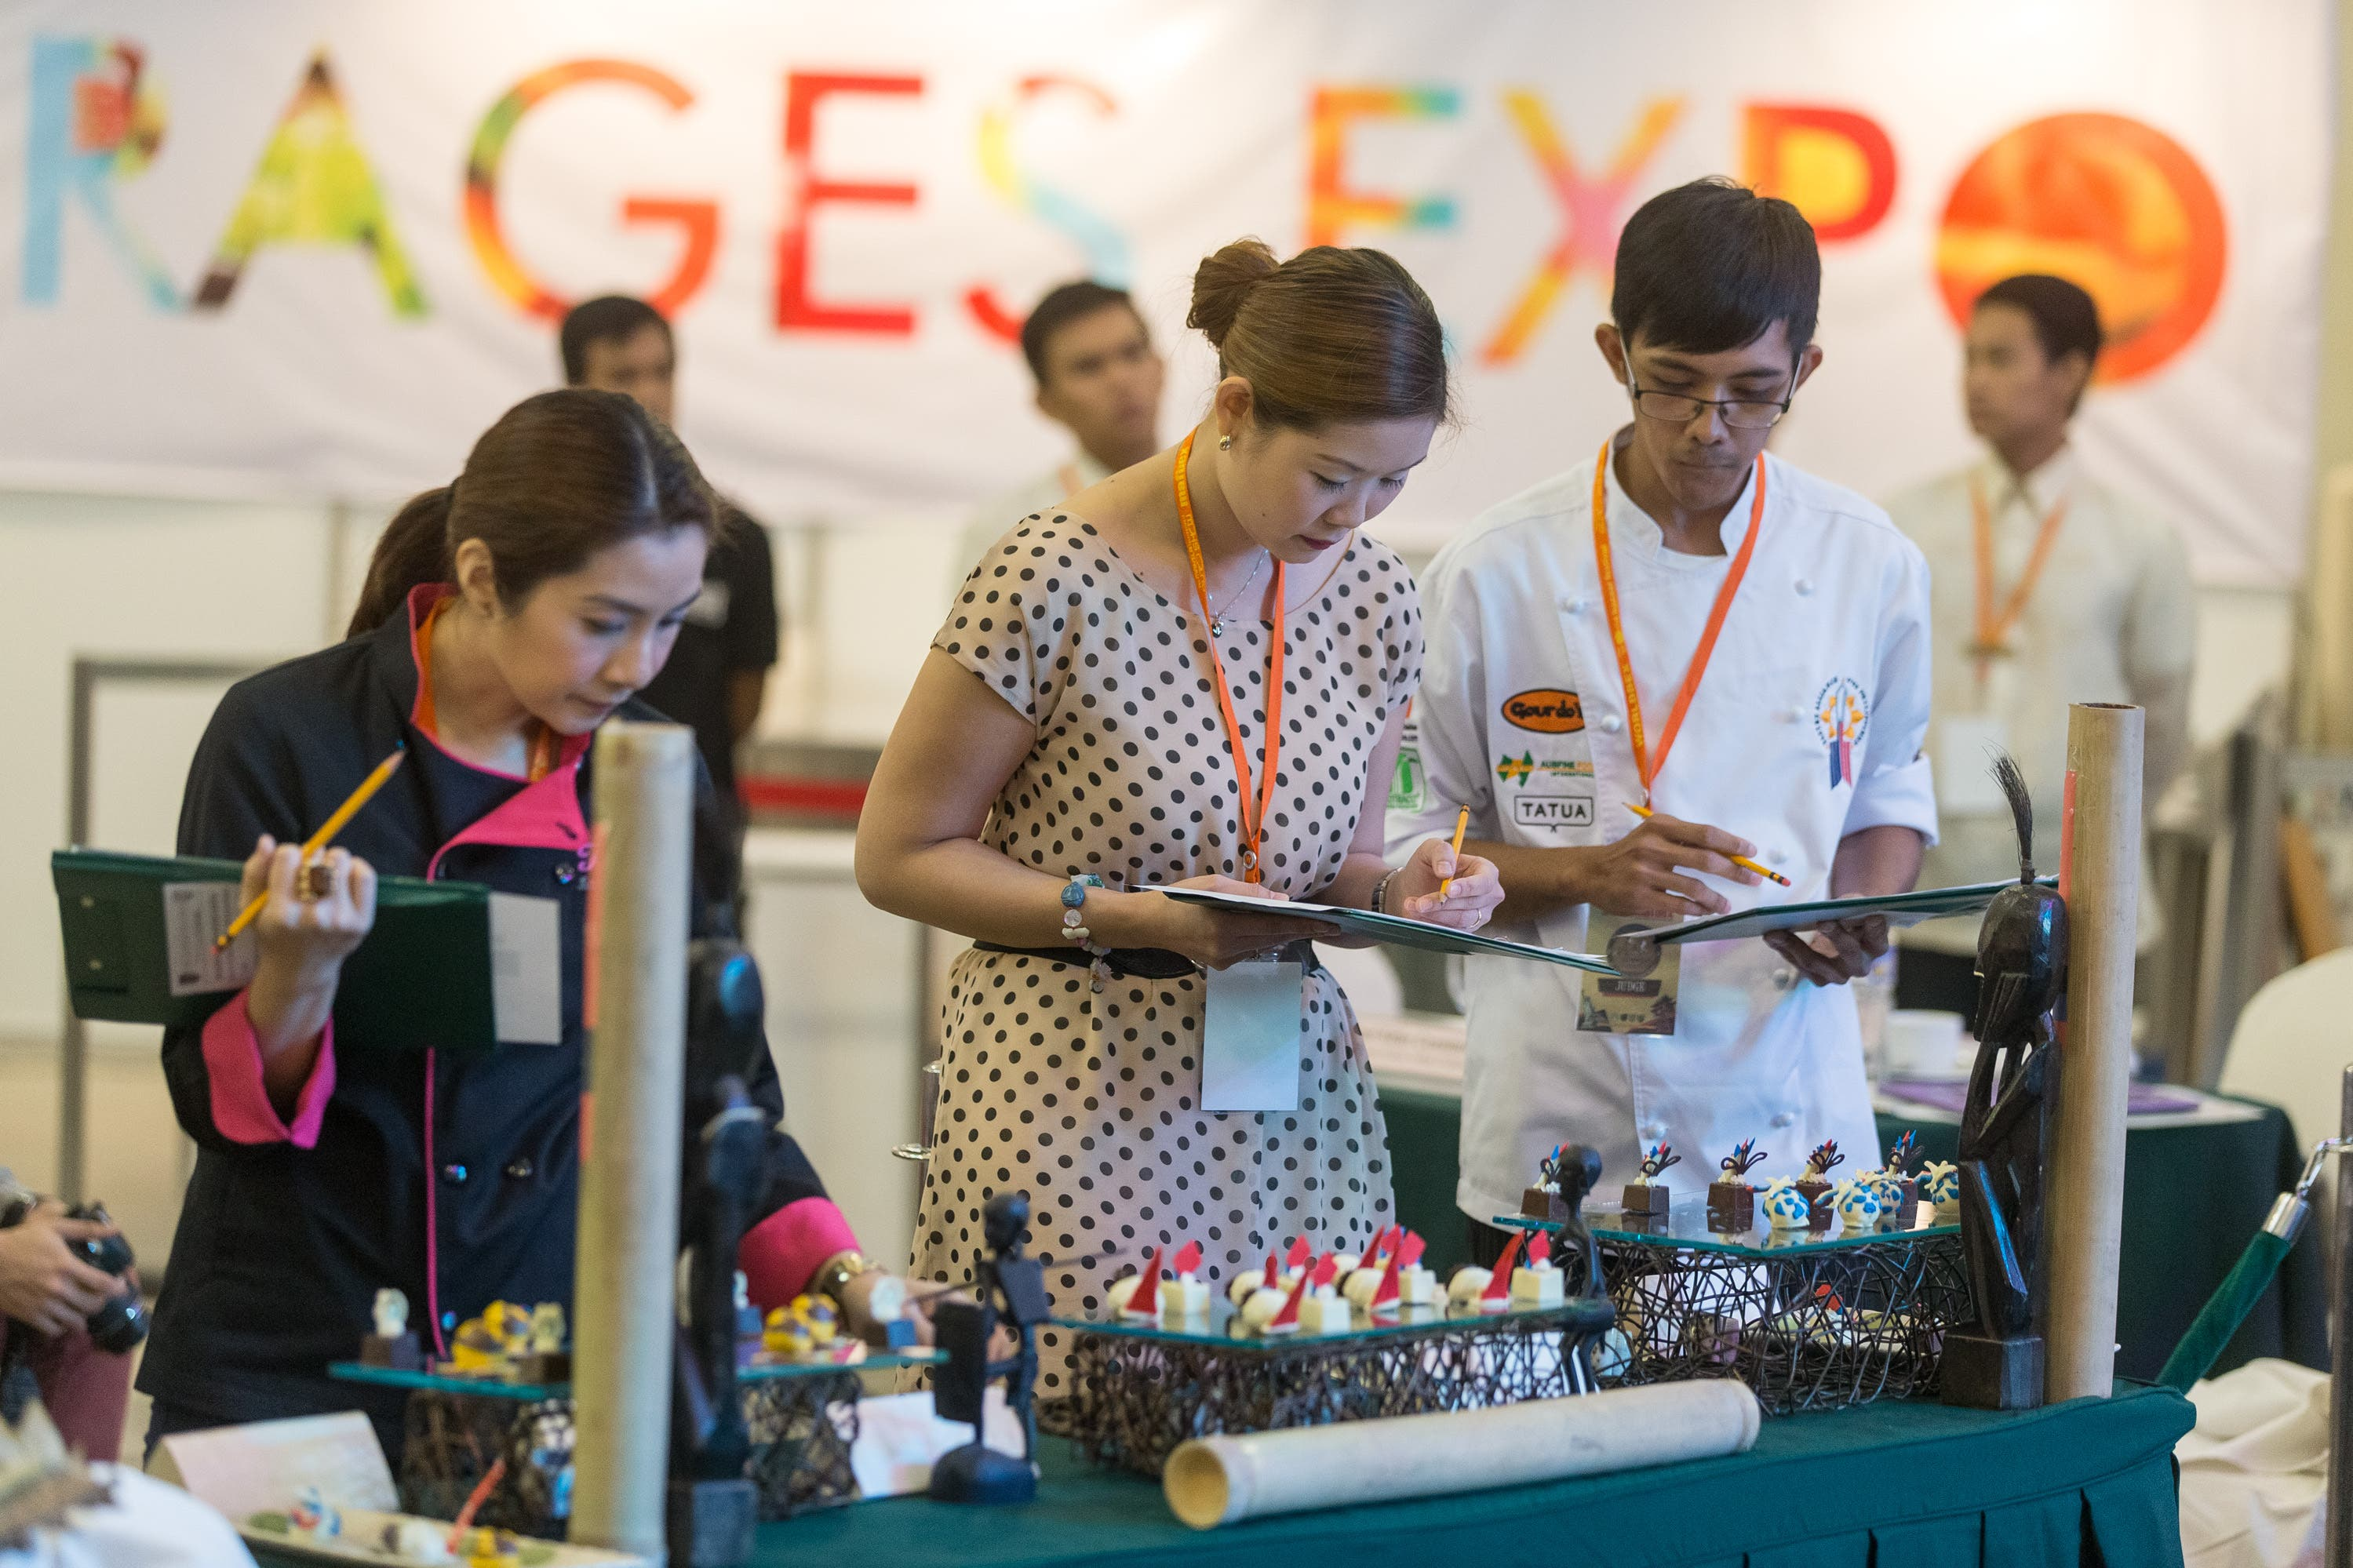 Experts judged the entries for the different competitions held during the 5-day expo.